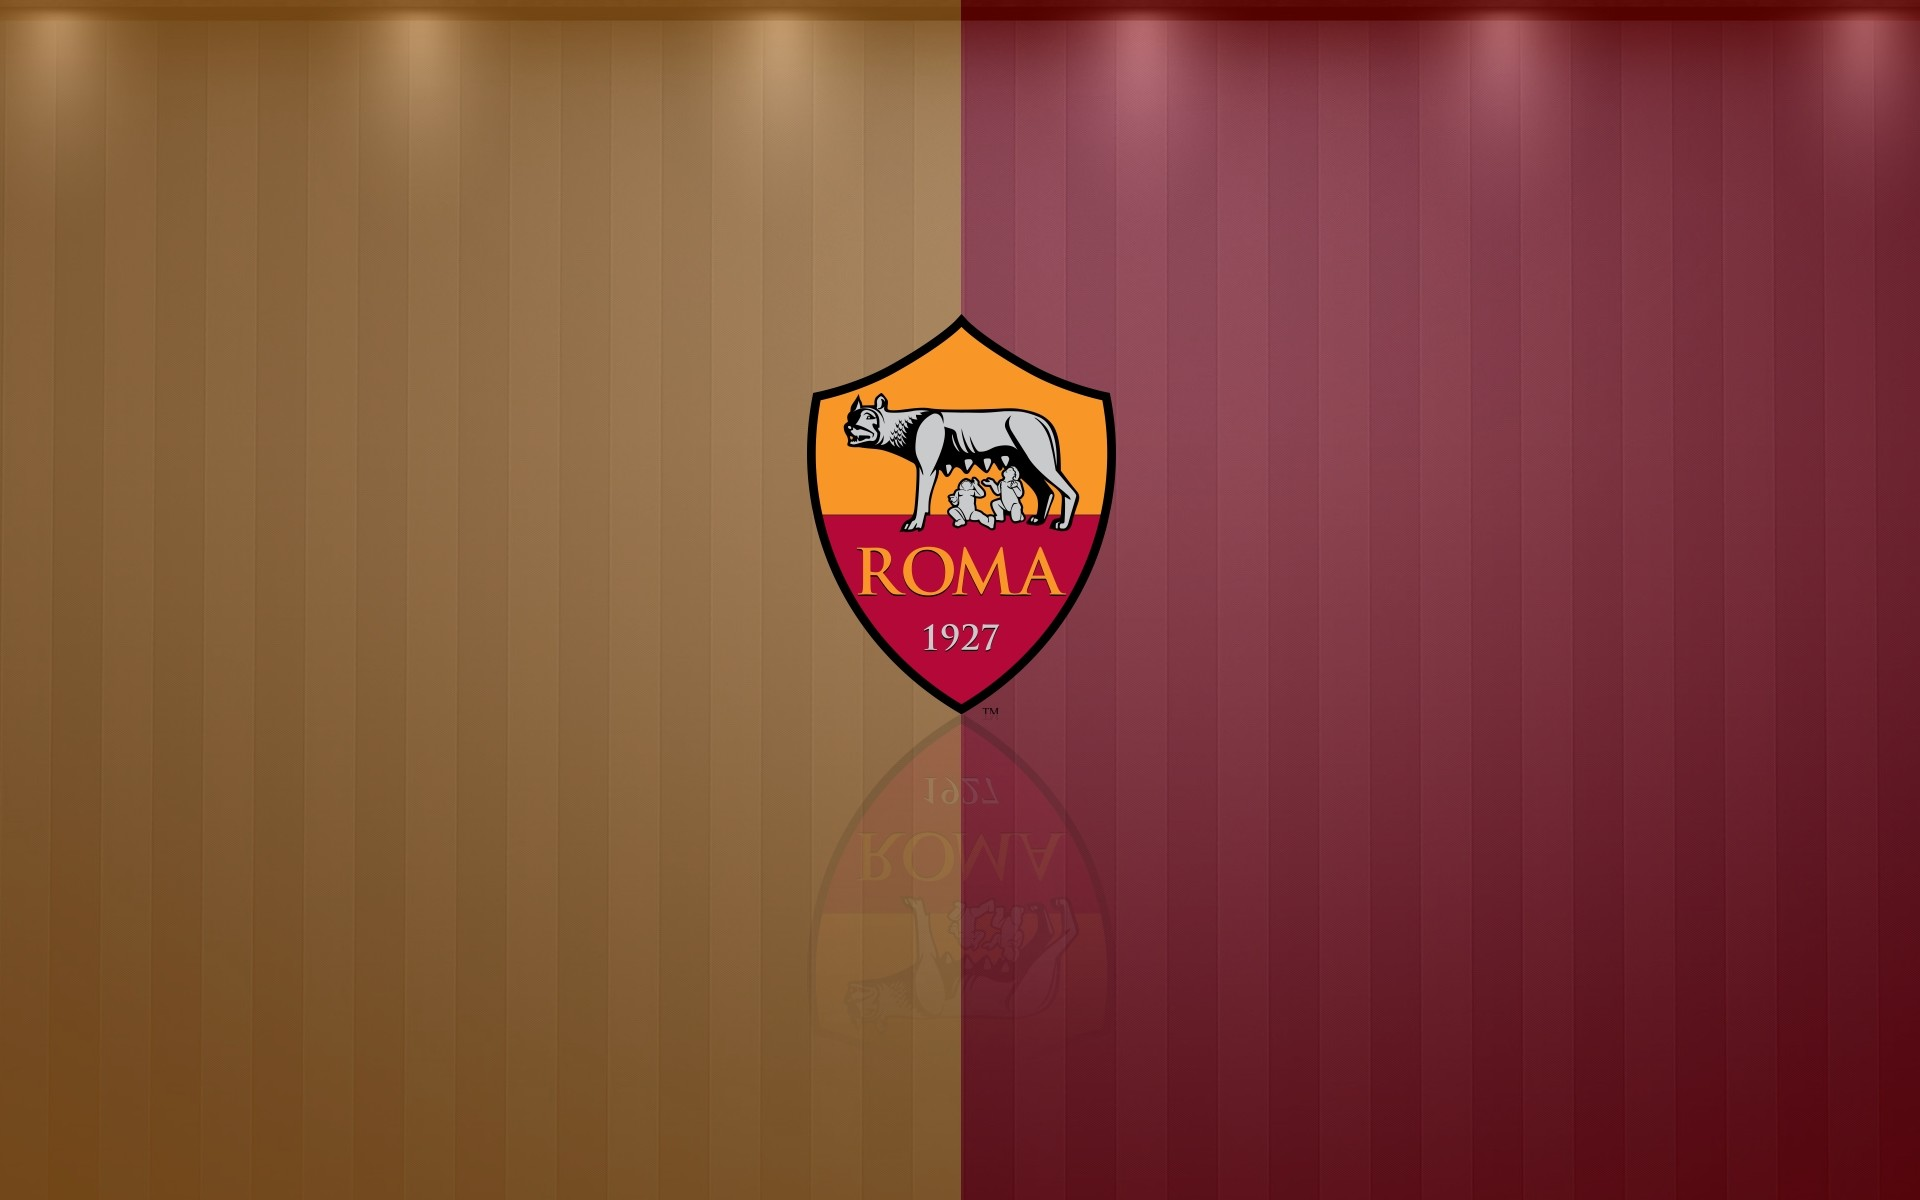 Iphone X Wallpaper Full Hd With Apple Logo As Roma Wallpapers 183 ① Wallpapertag